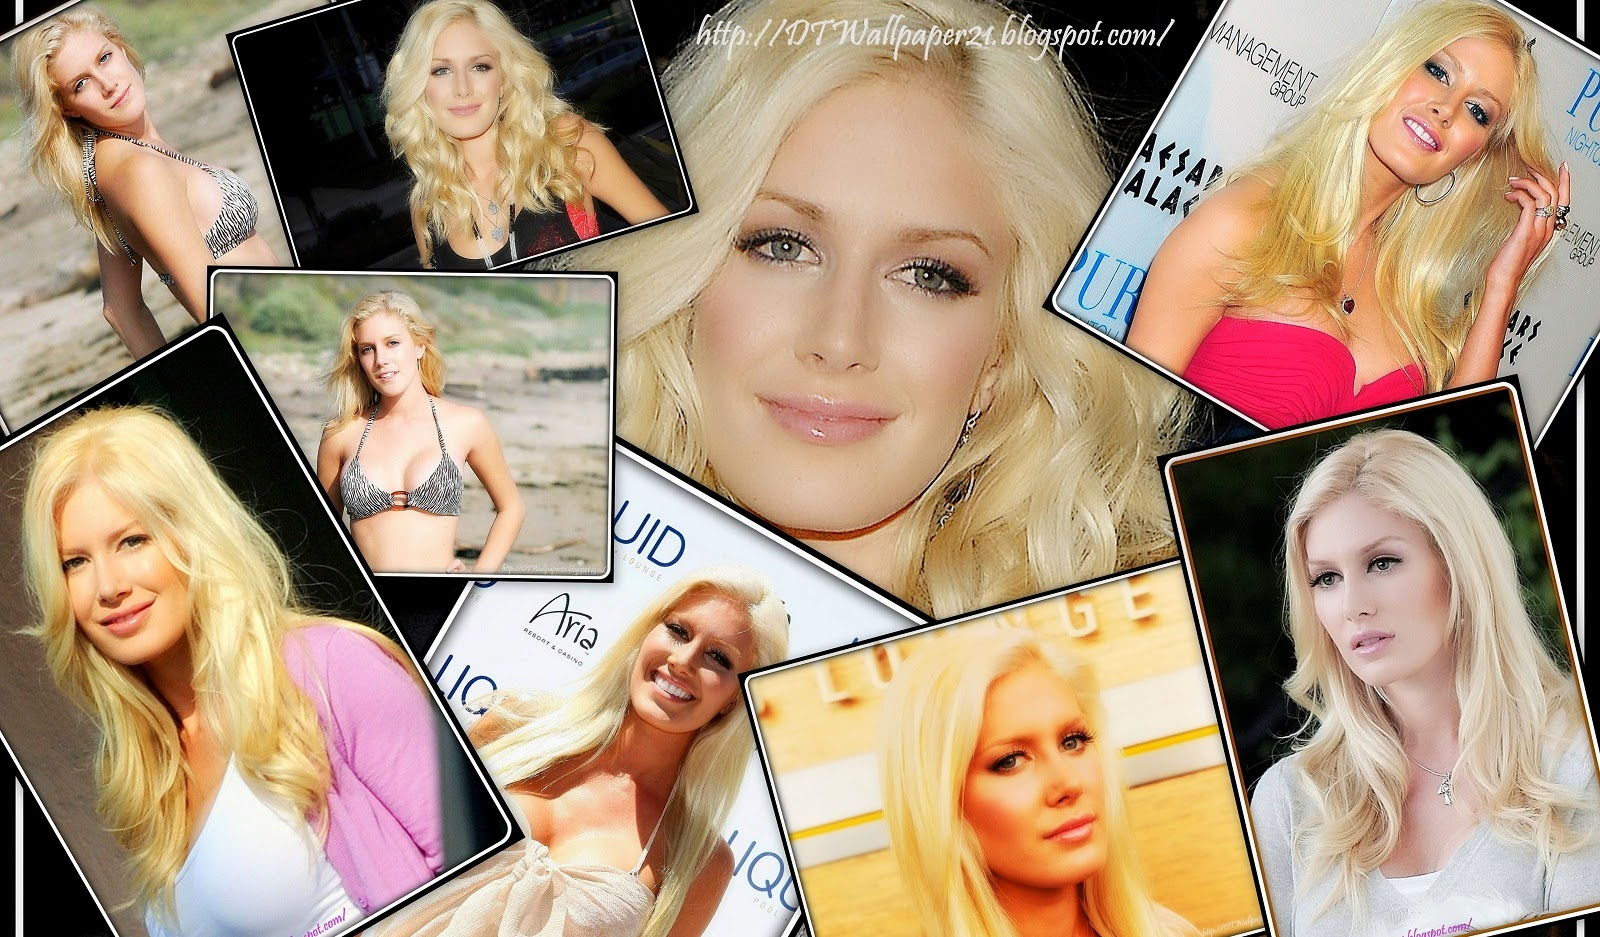 celebrity, heidi montag, heidi montag boobs, heidi montag pictures, heidi montag surgery, heidi montag biography